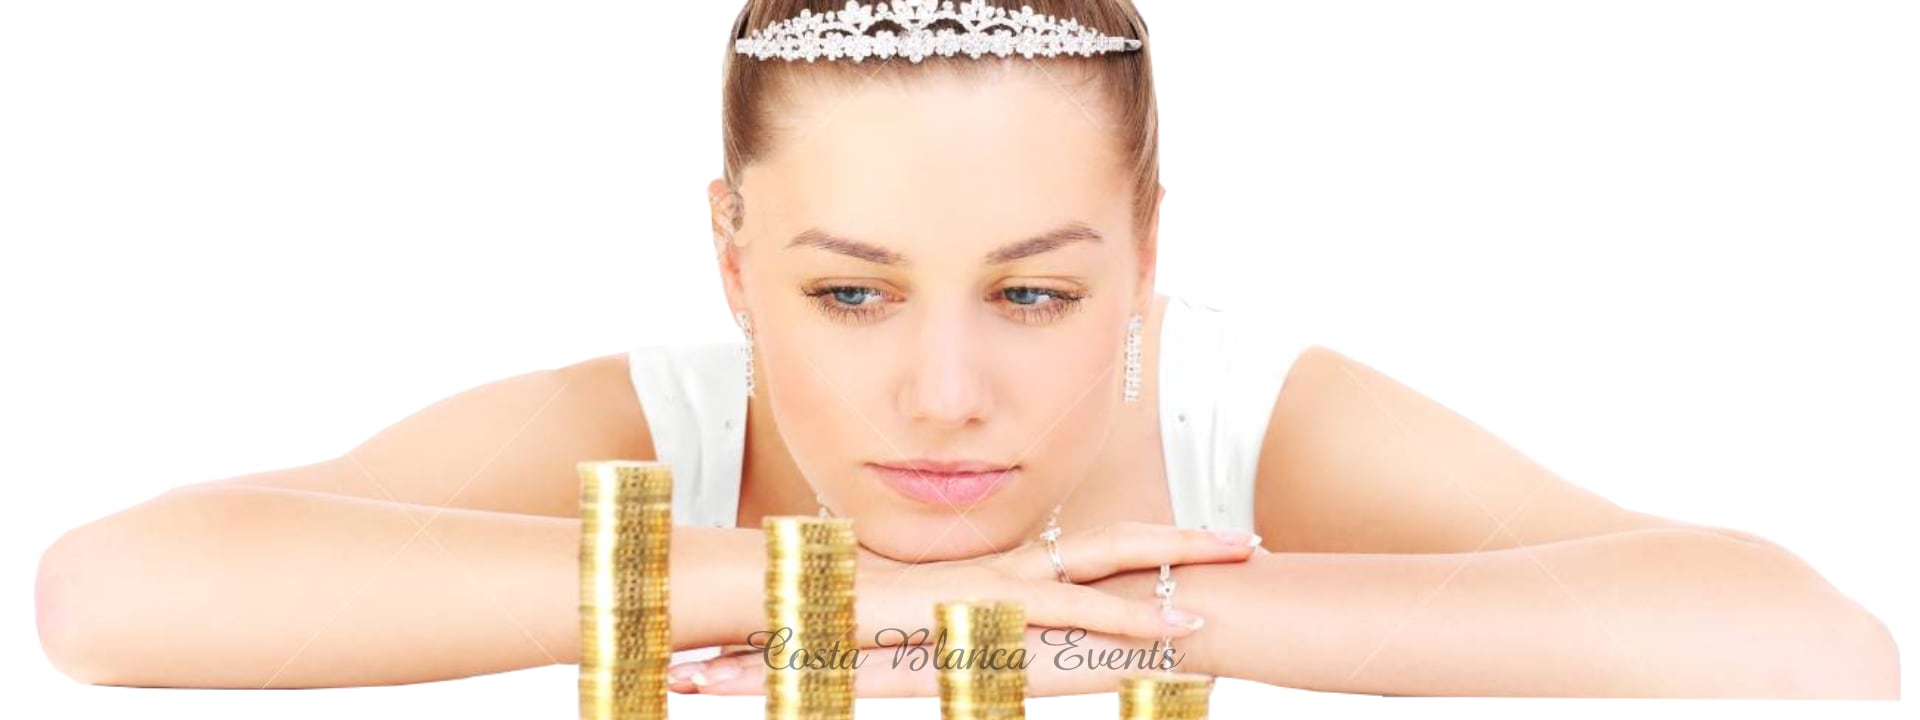 Photo of a Bride looking at a stack of coins when making a budget for her wedding in Spain